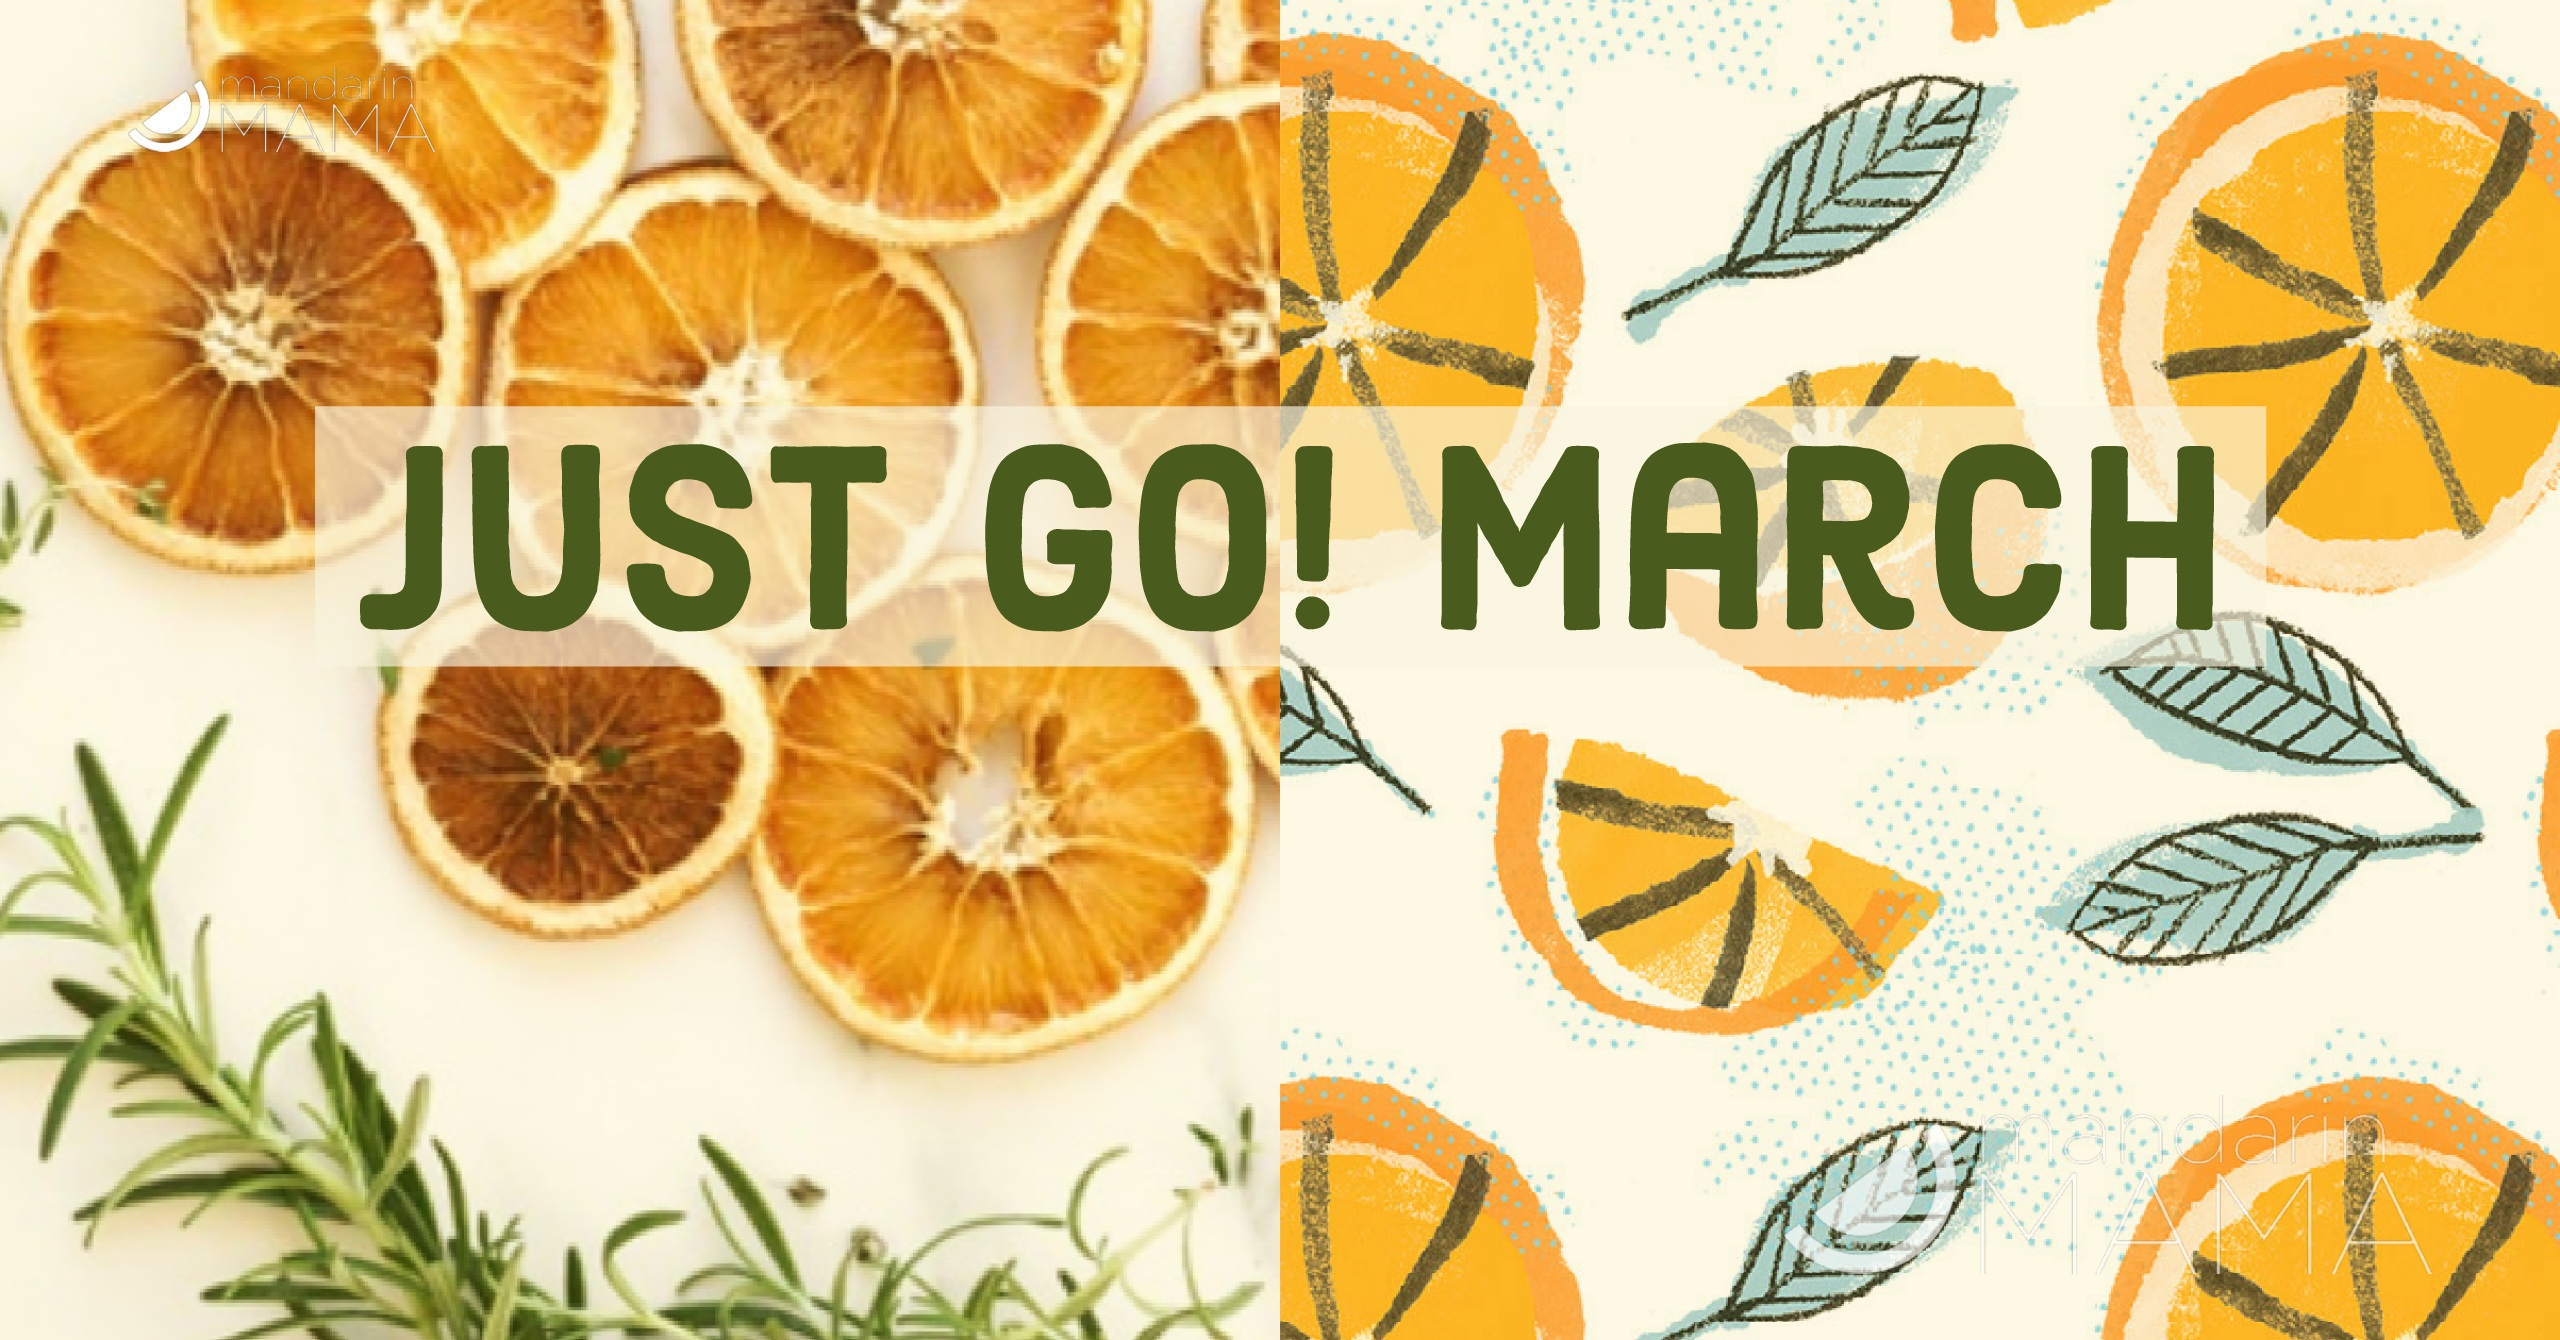 Just Go! March